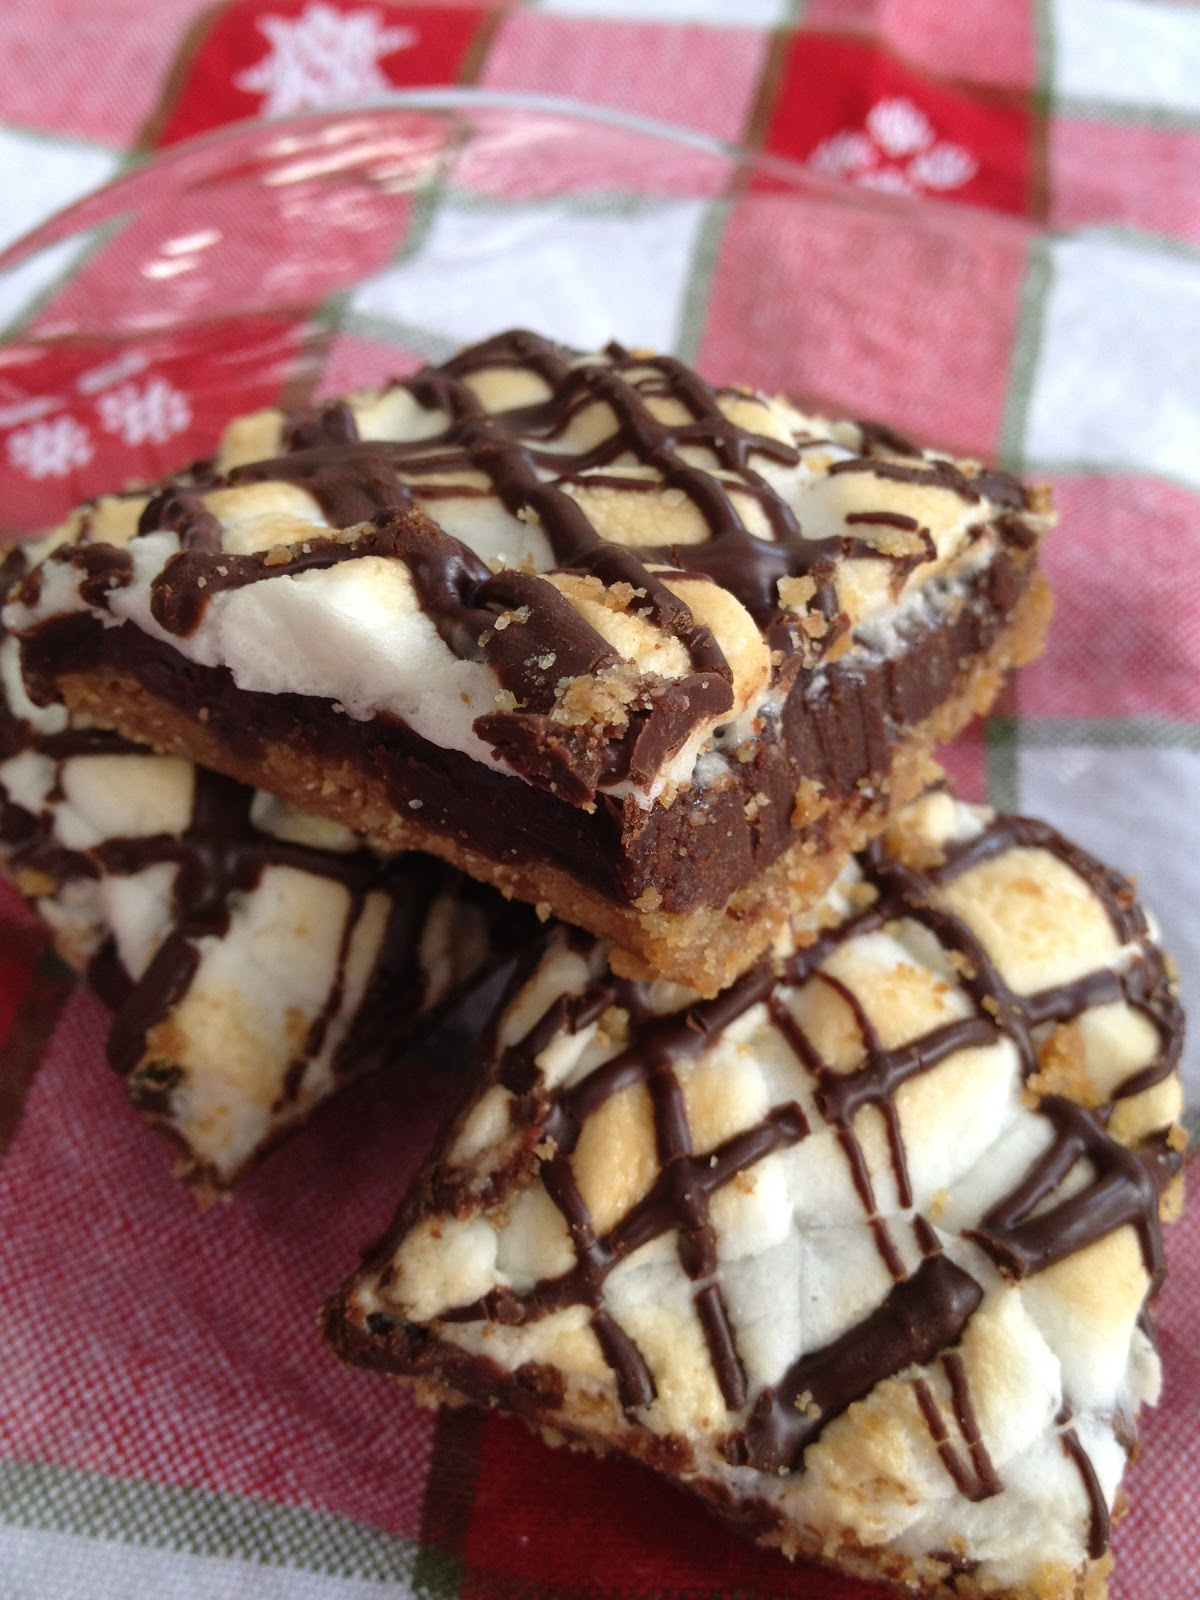 ... whimsies for spreading joy*: Toasted Marshmallow Summer S'more Bars